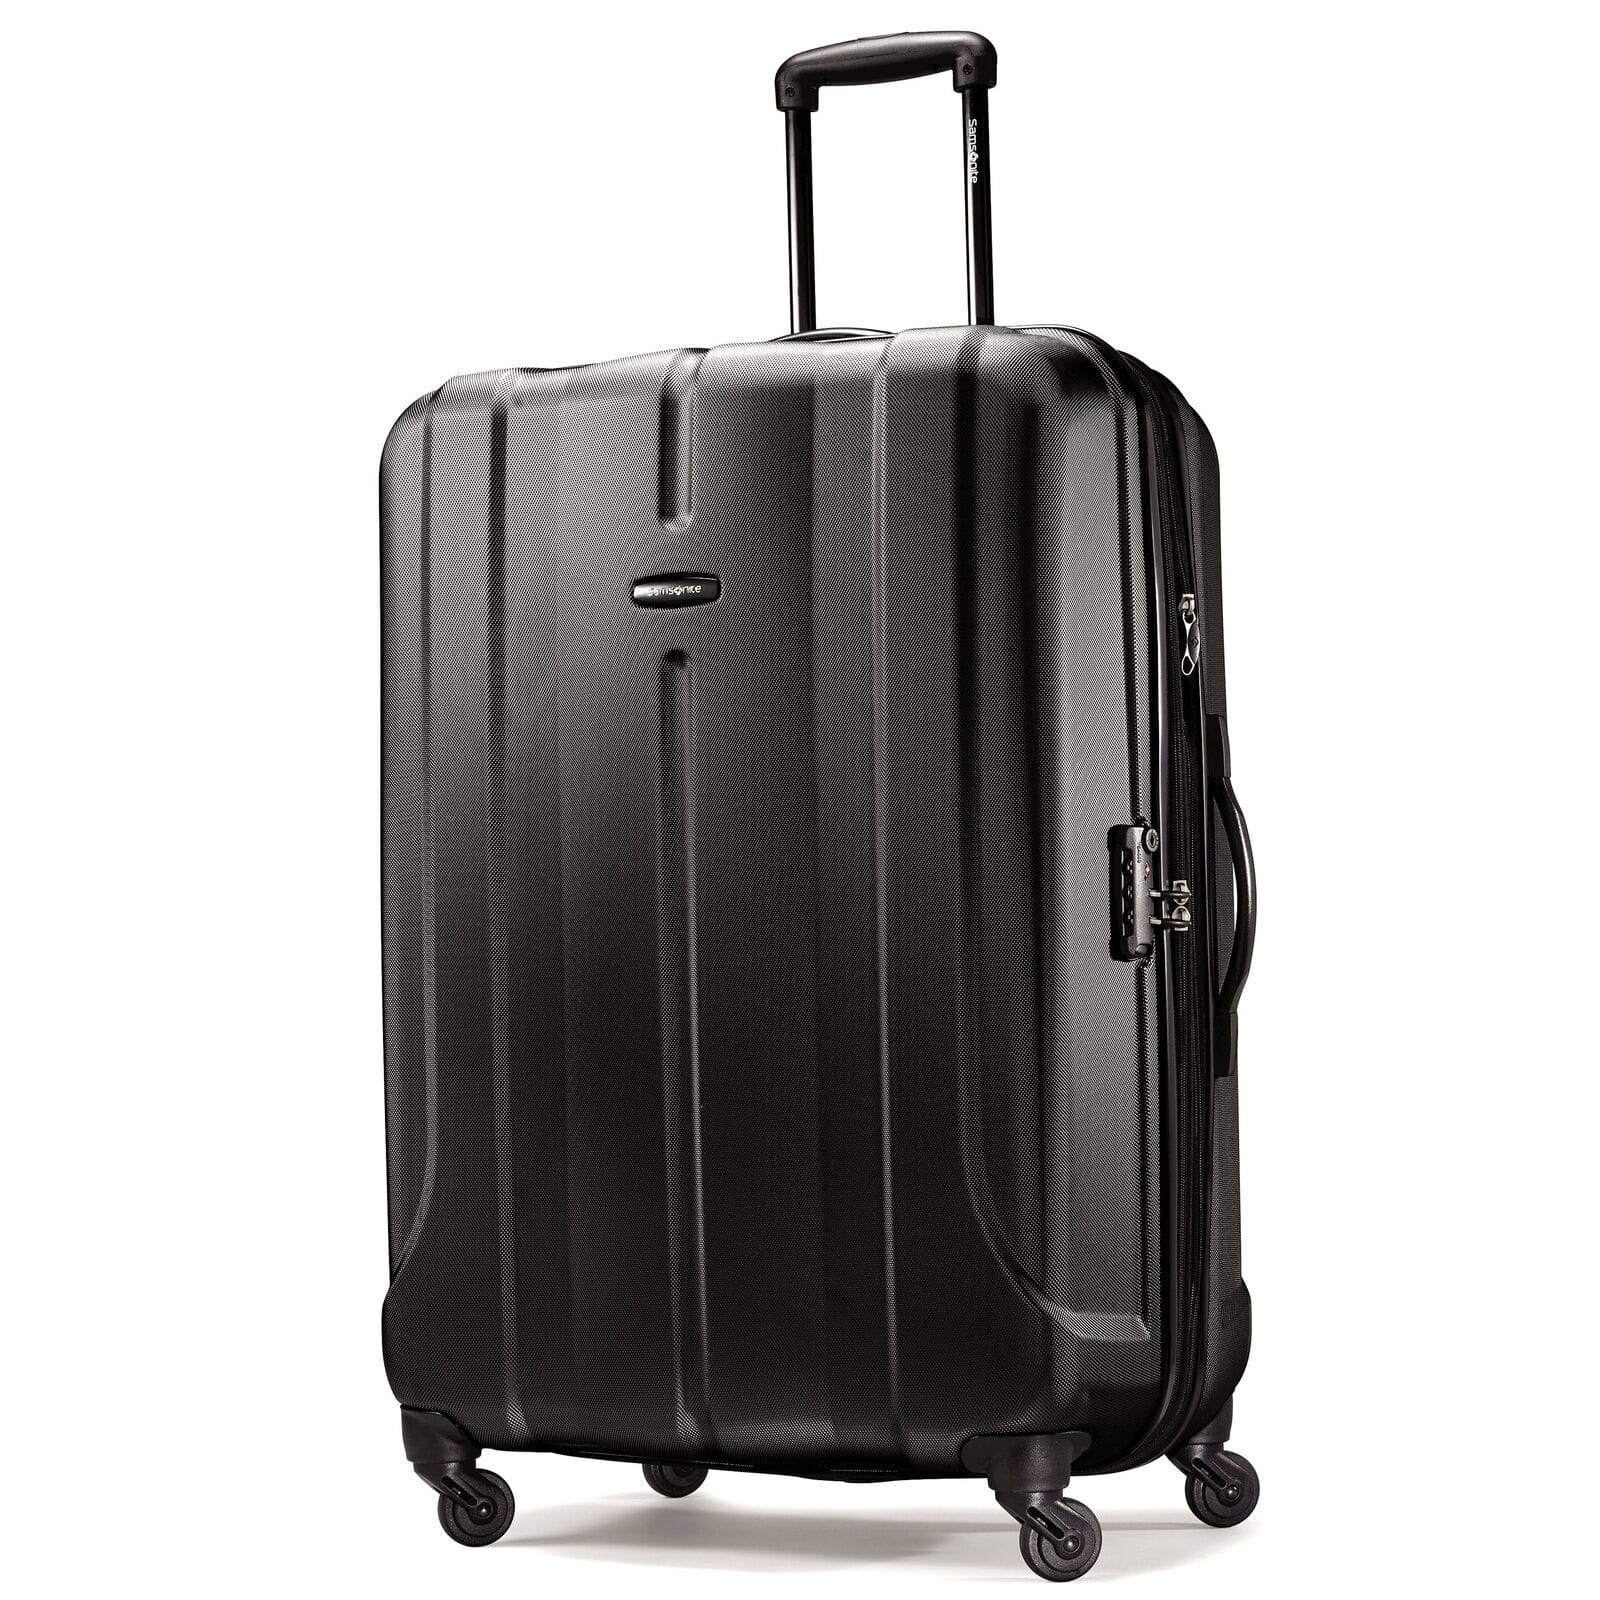 "Samsonite Fiero Hardside Spinner w/ Mounted TSA Lock 20"" $59.49 